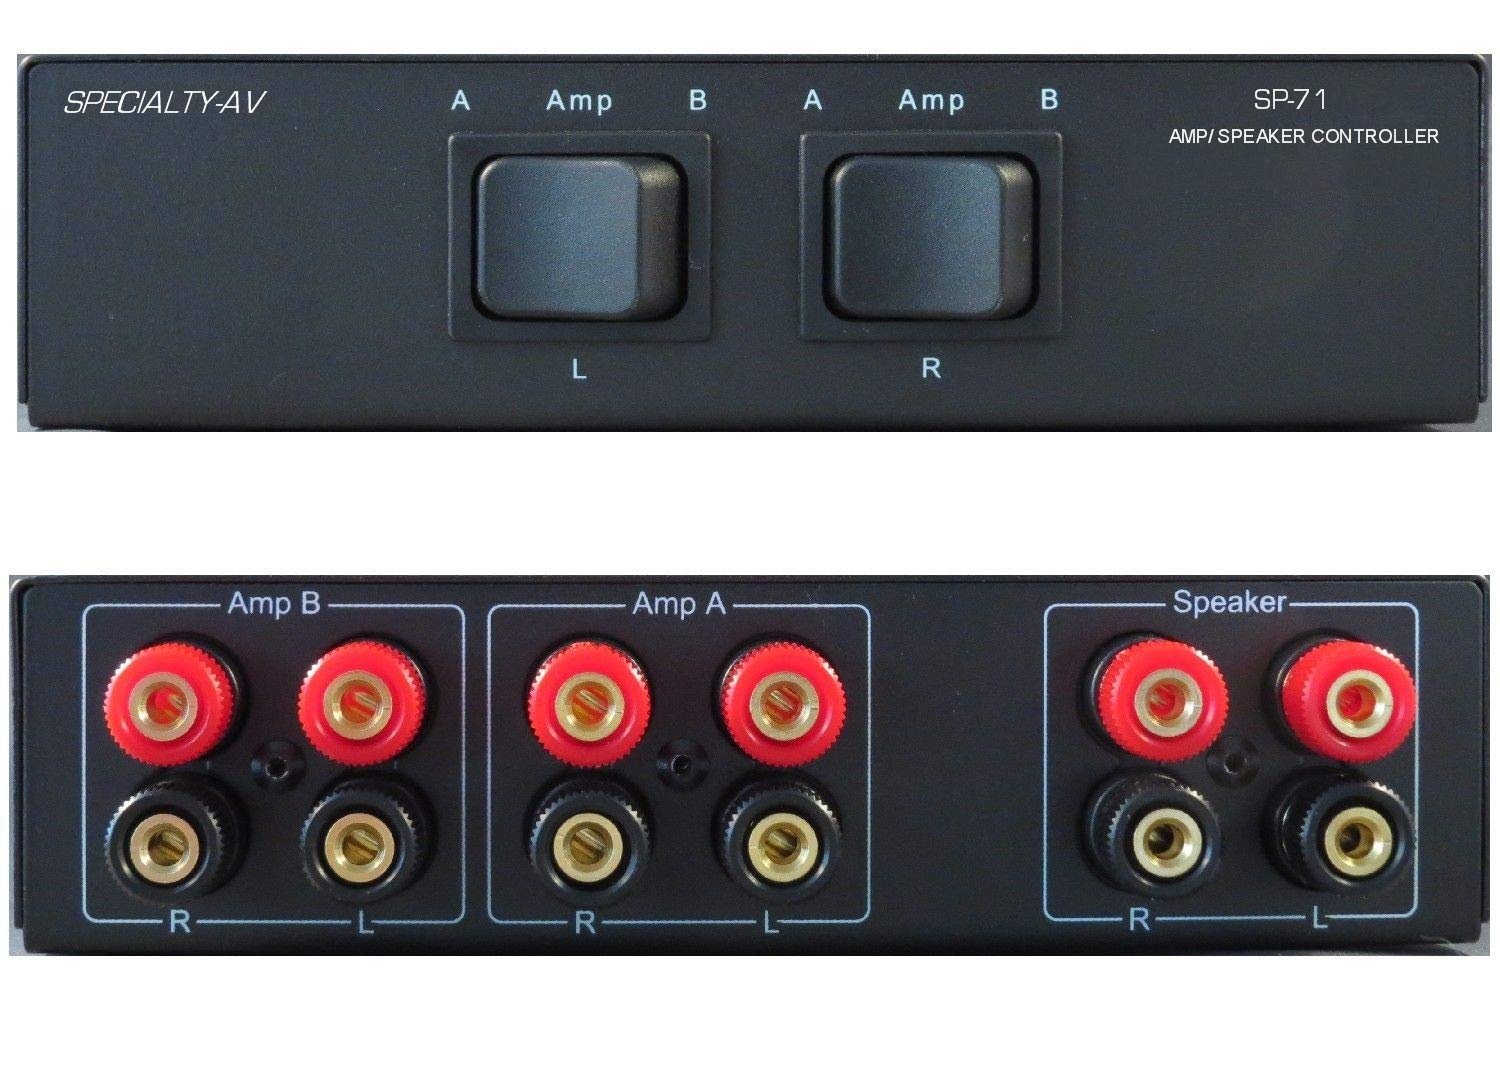 A//B A+B Switch 1 IN 2 OUT 2 Way Stereo Receiver Speaker Set Selector